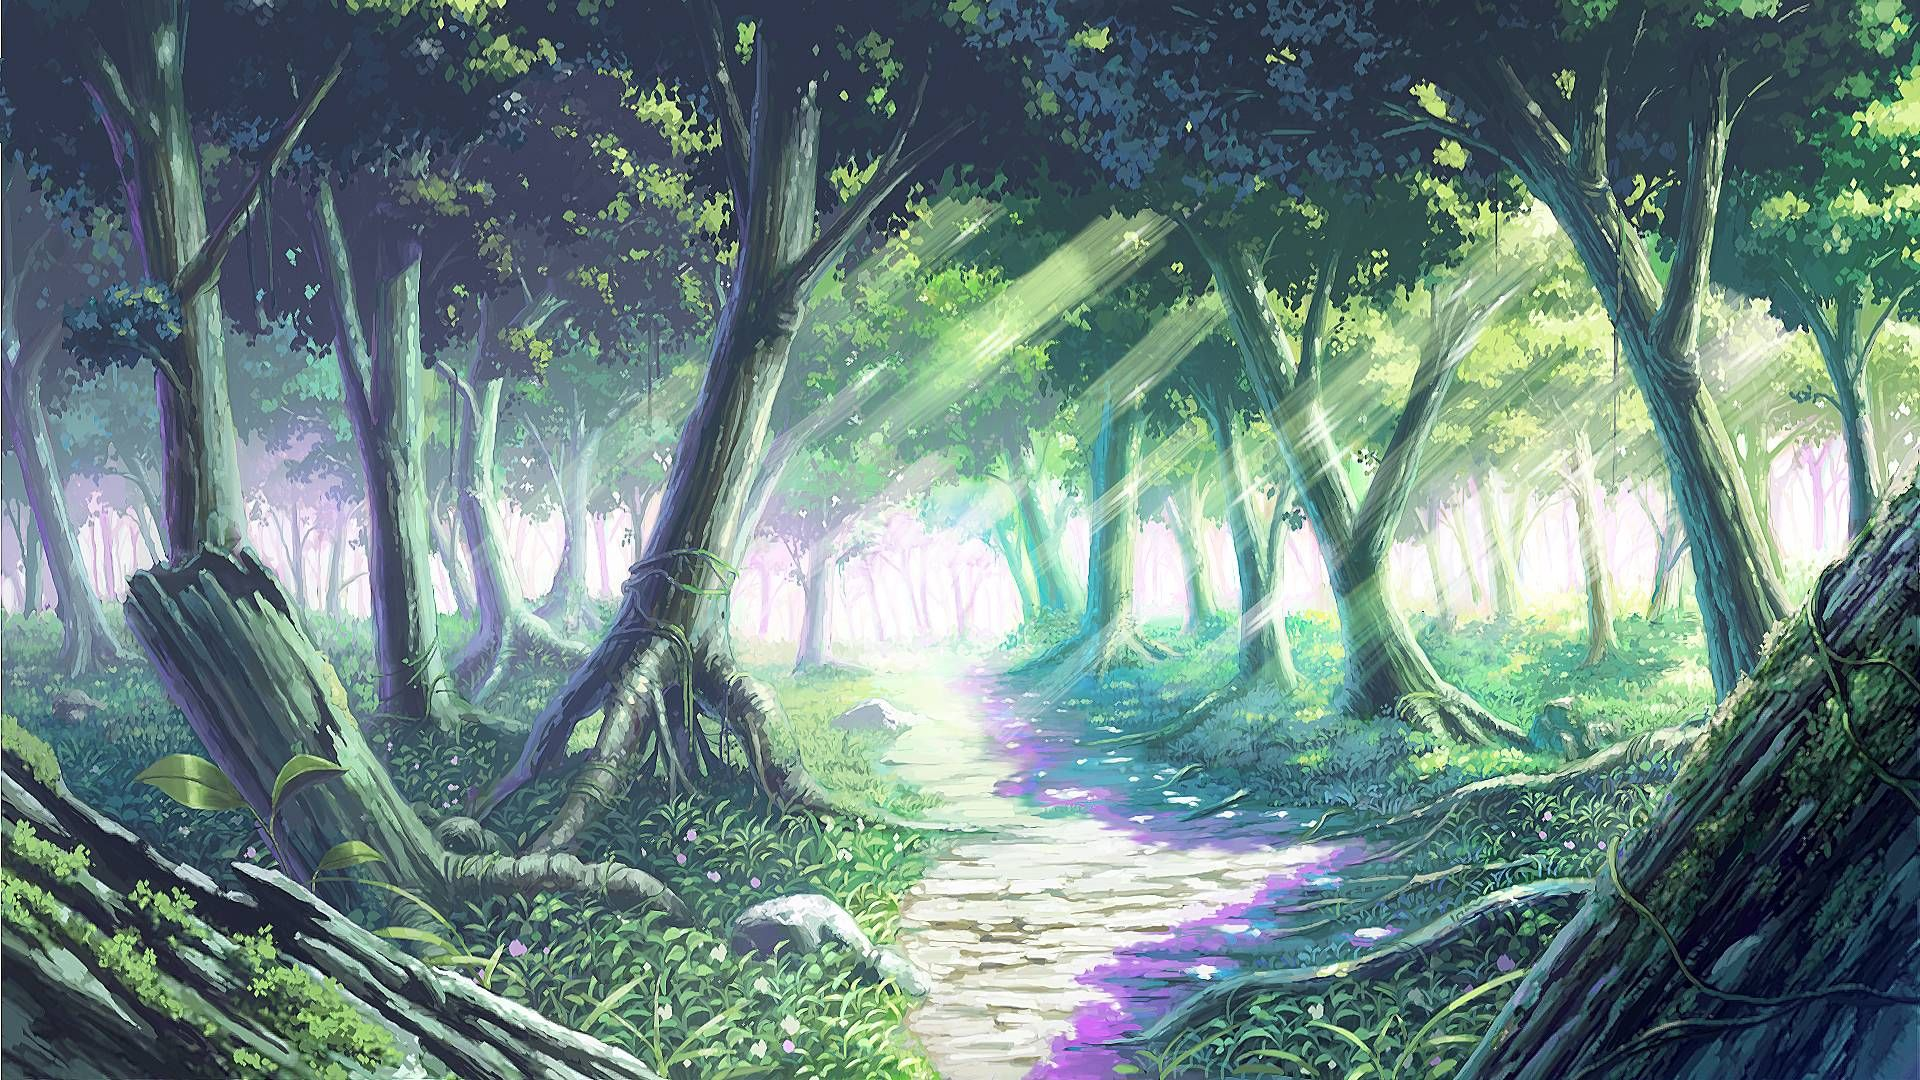 Anime Forest Backgrounds Wallpaper Cave Anime Scenery Anime Backgrounds Wallpapers Anime Background